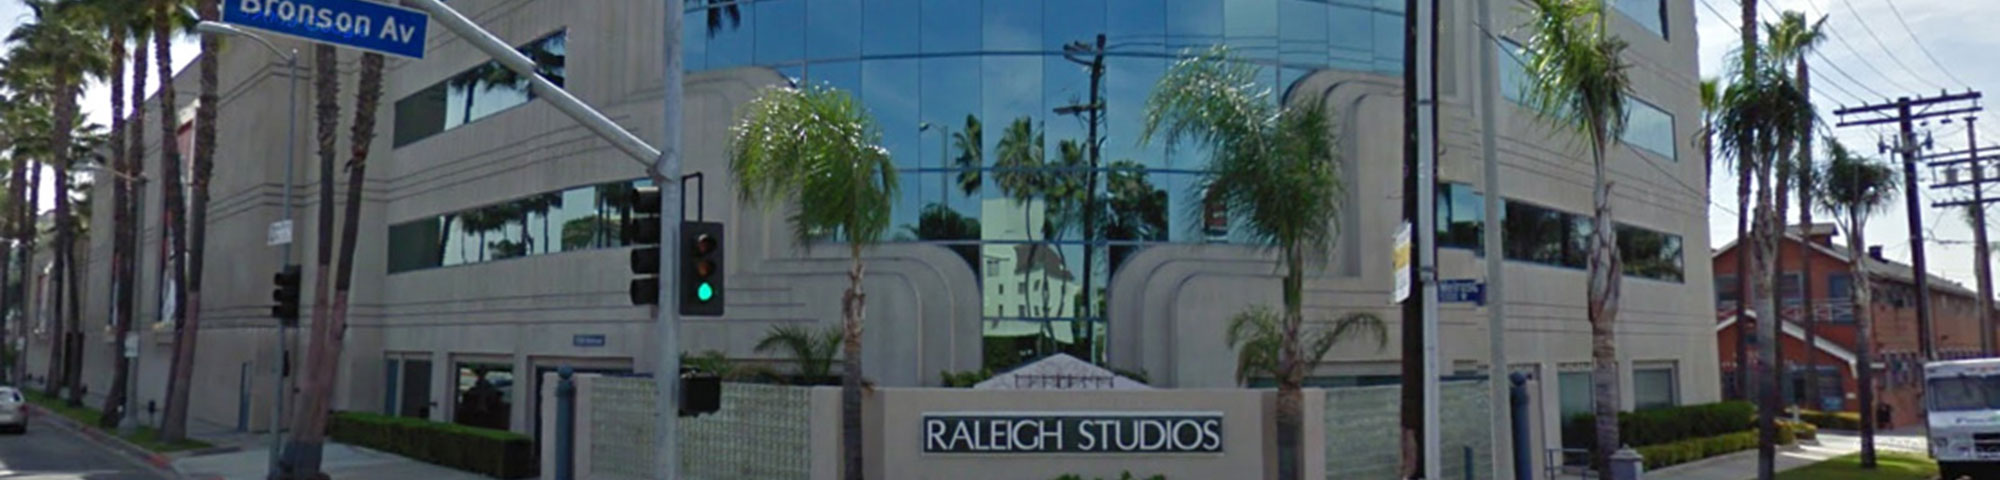 The Raleigh Studios building on Bronson Ave.